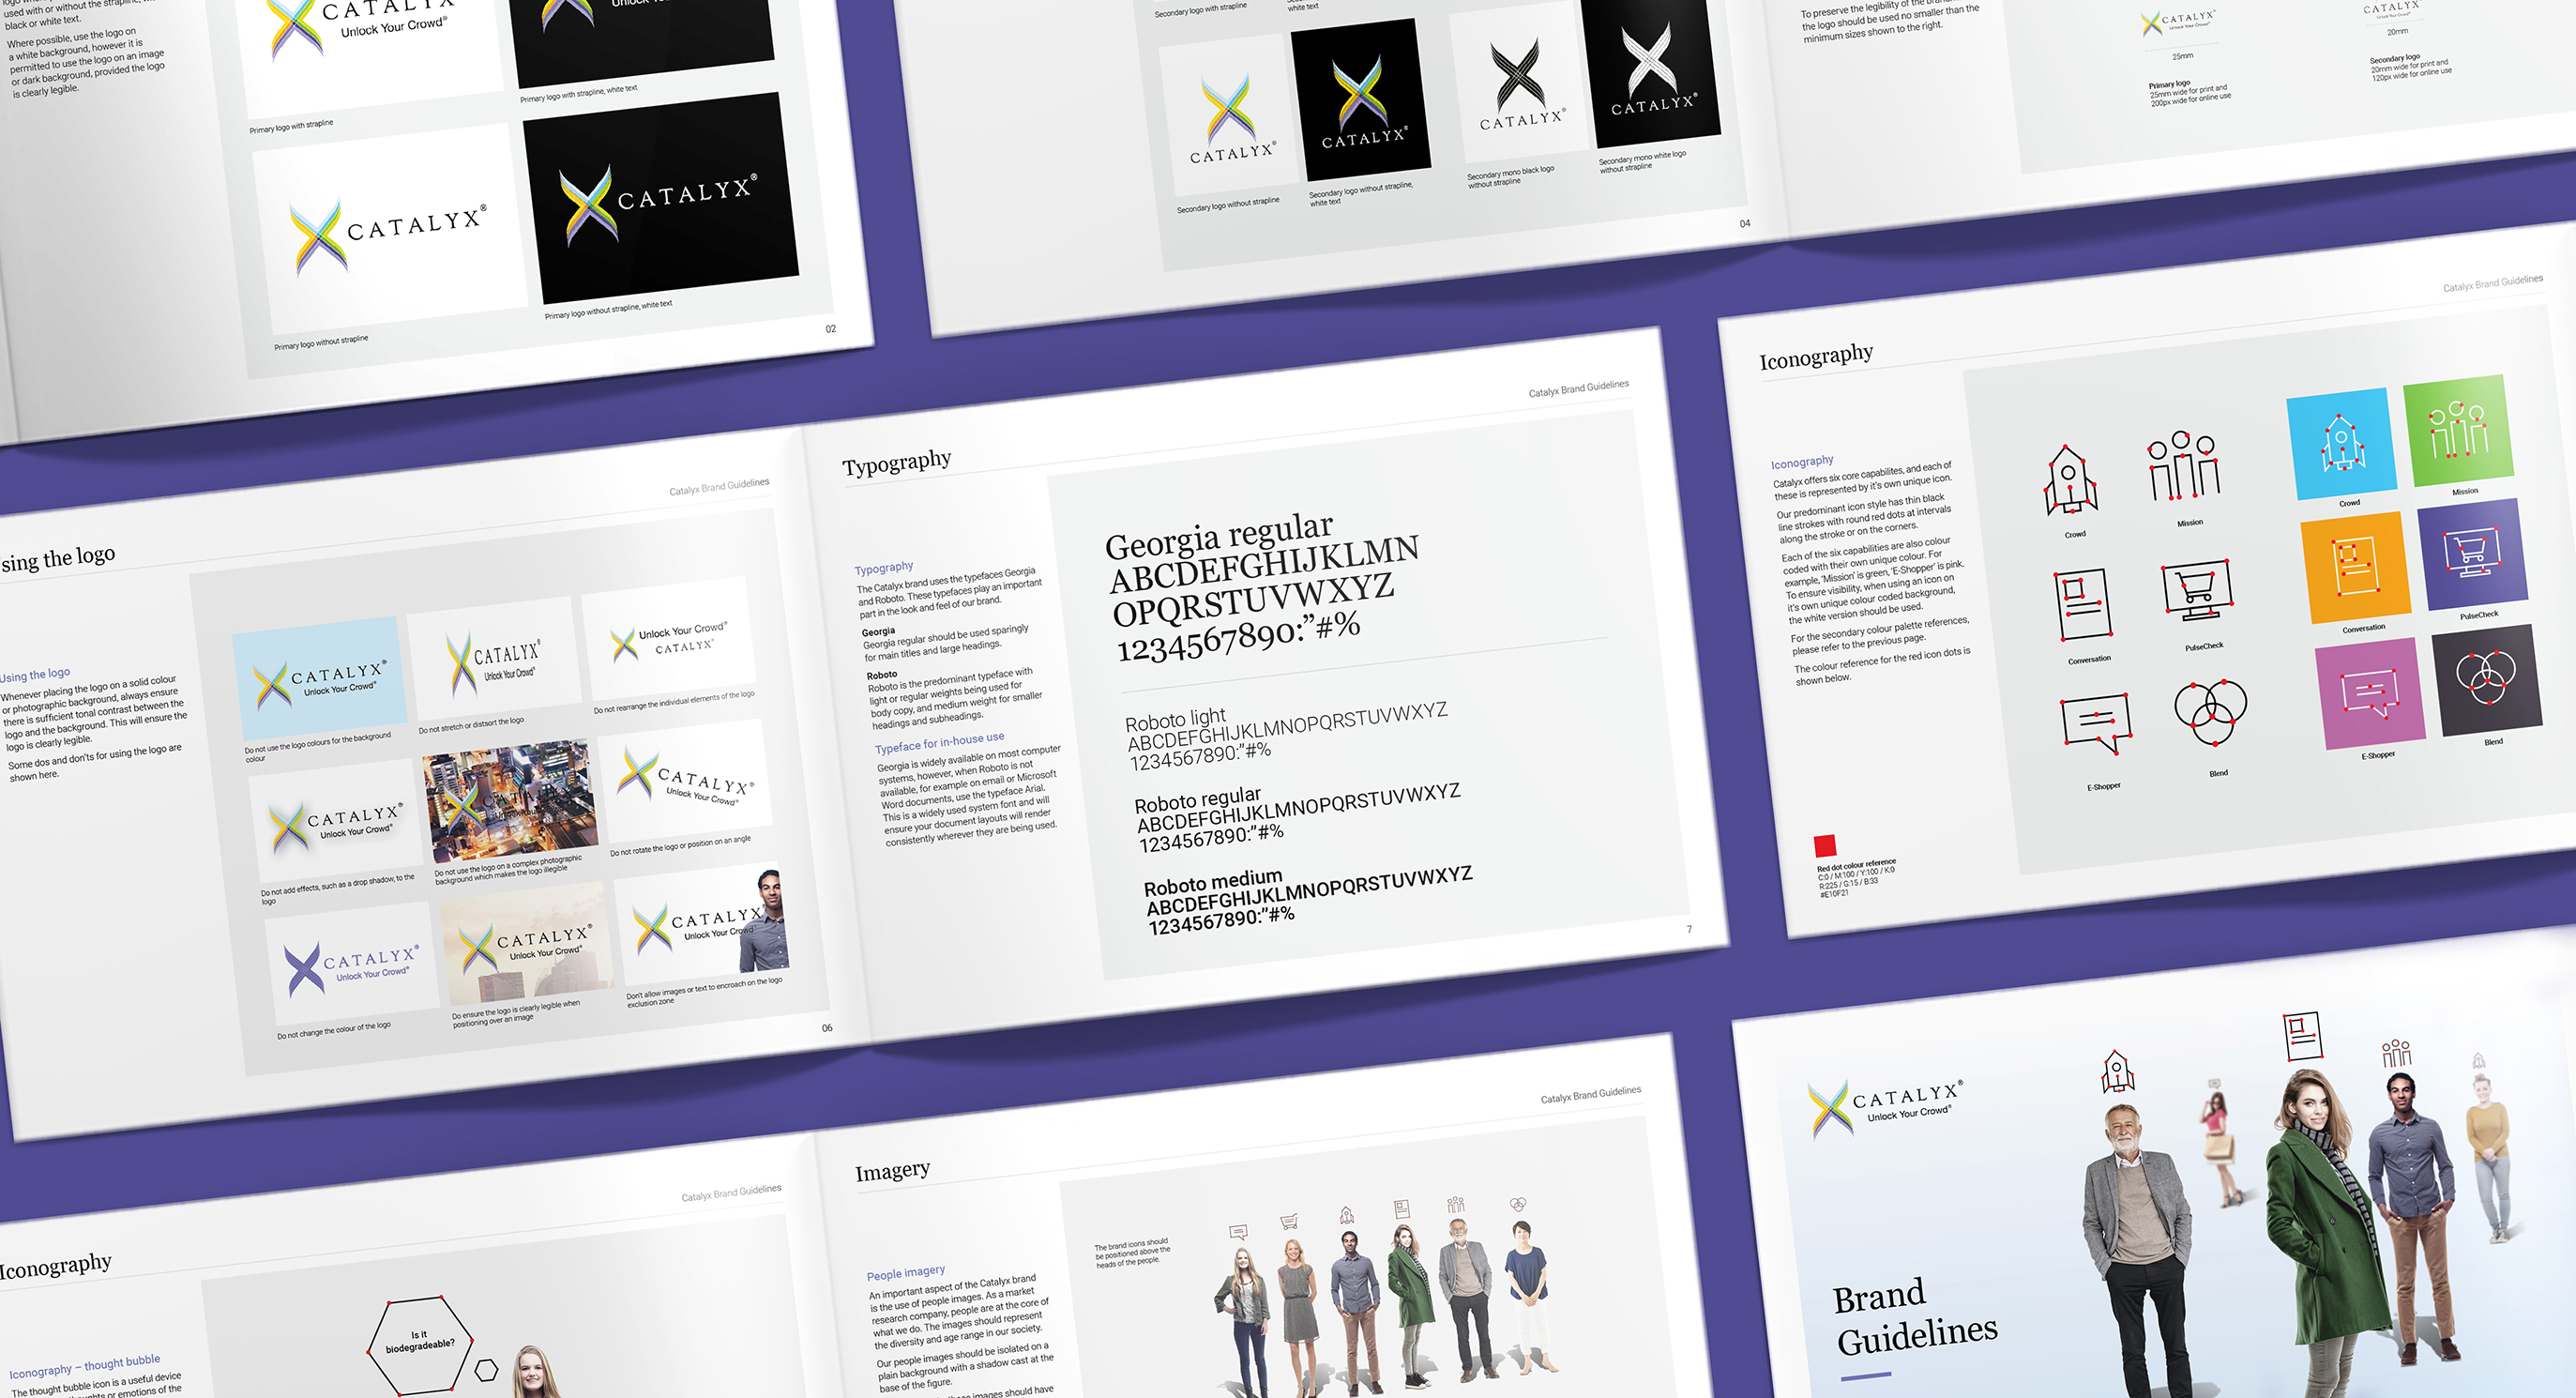 Catalyx branding guidelines